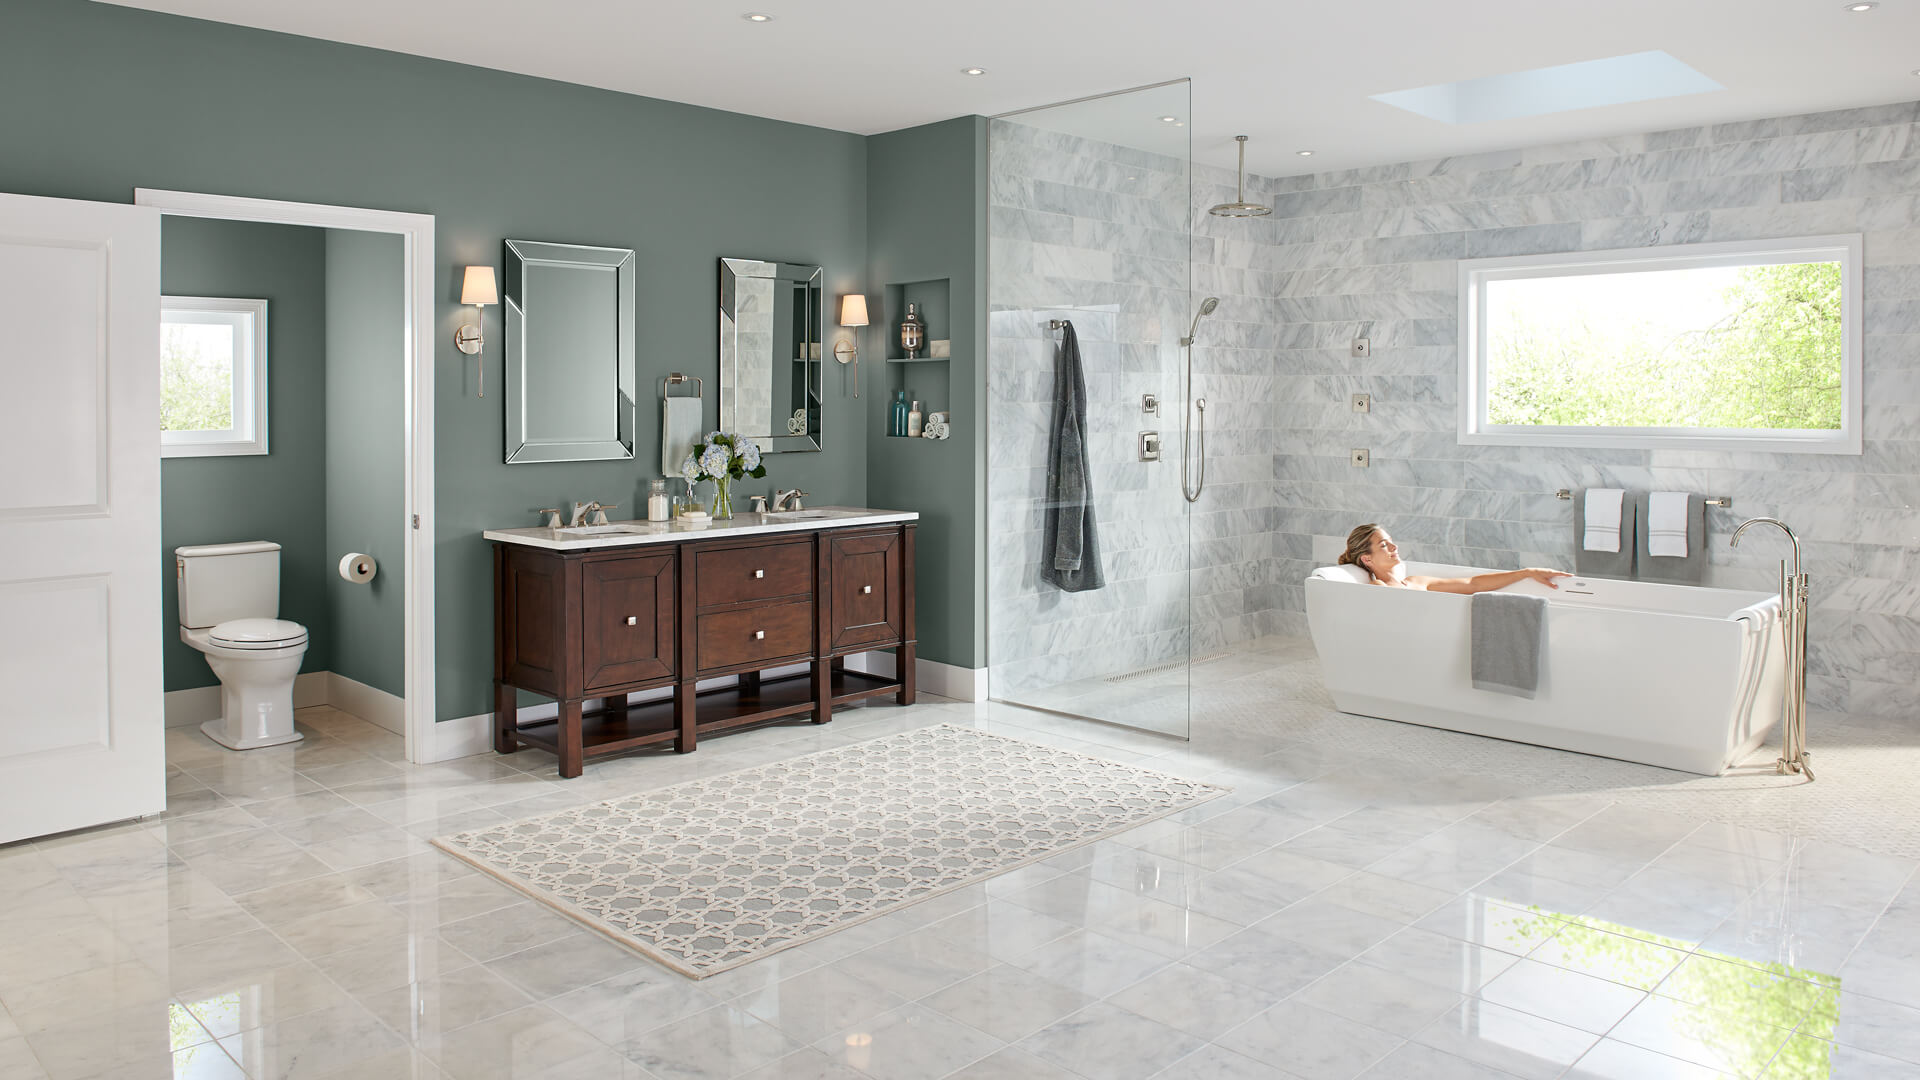 Bathroom Fixtures Miami home - totousa